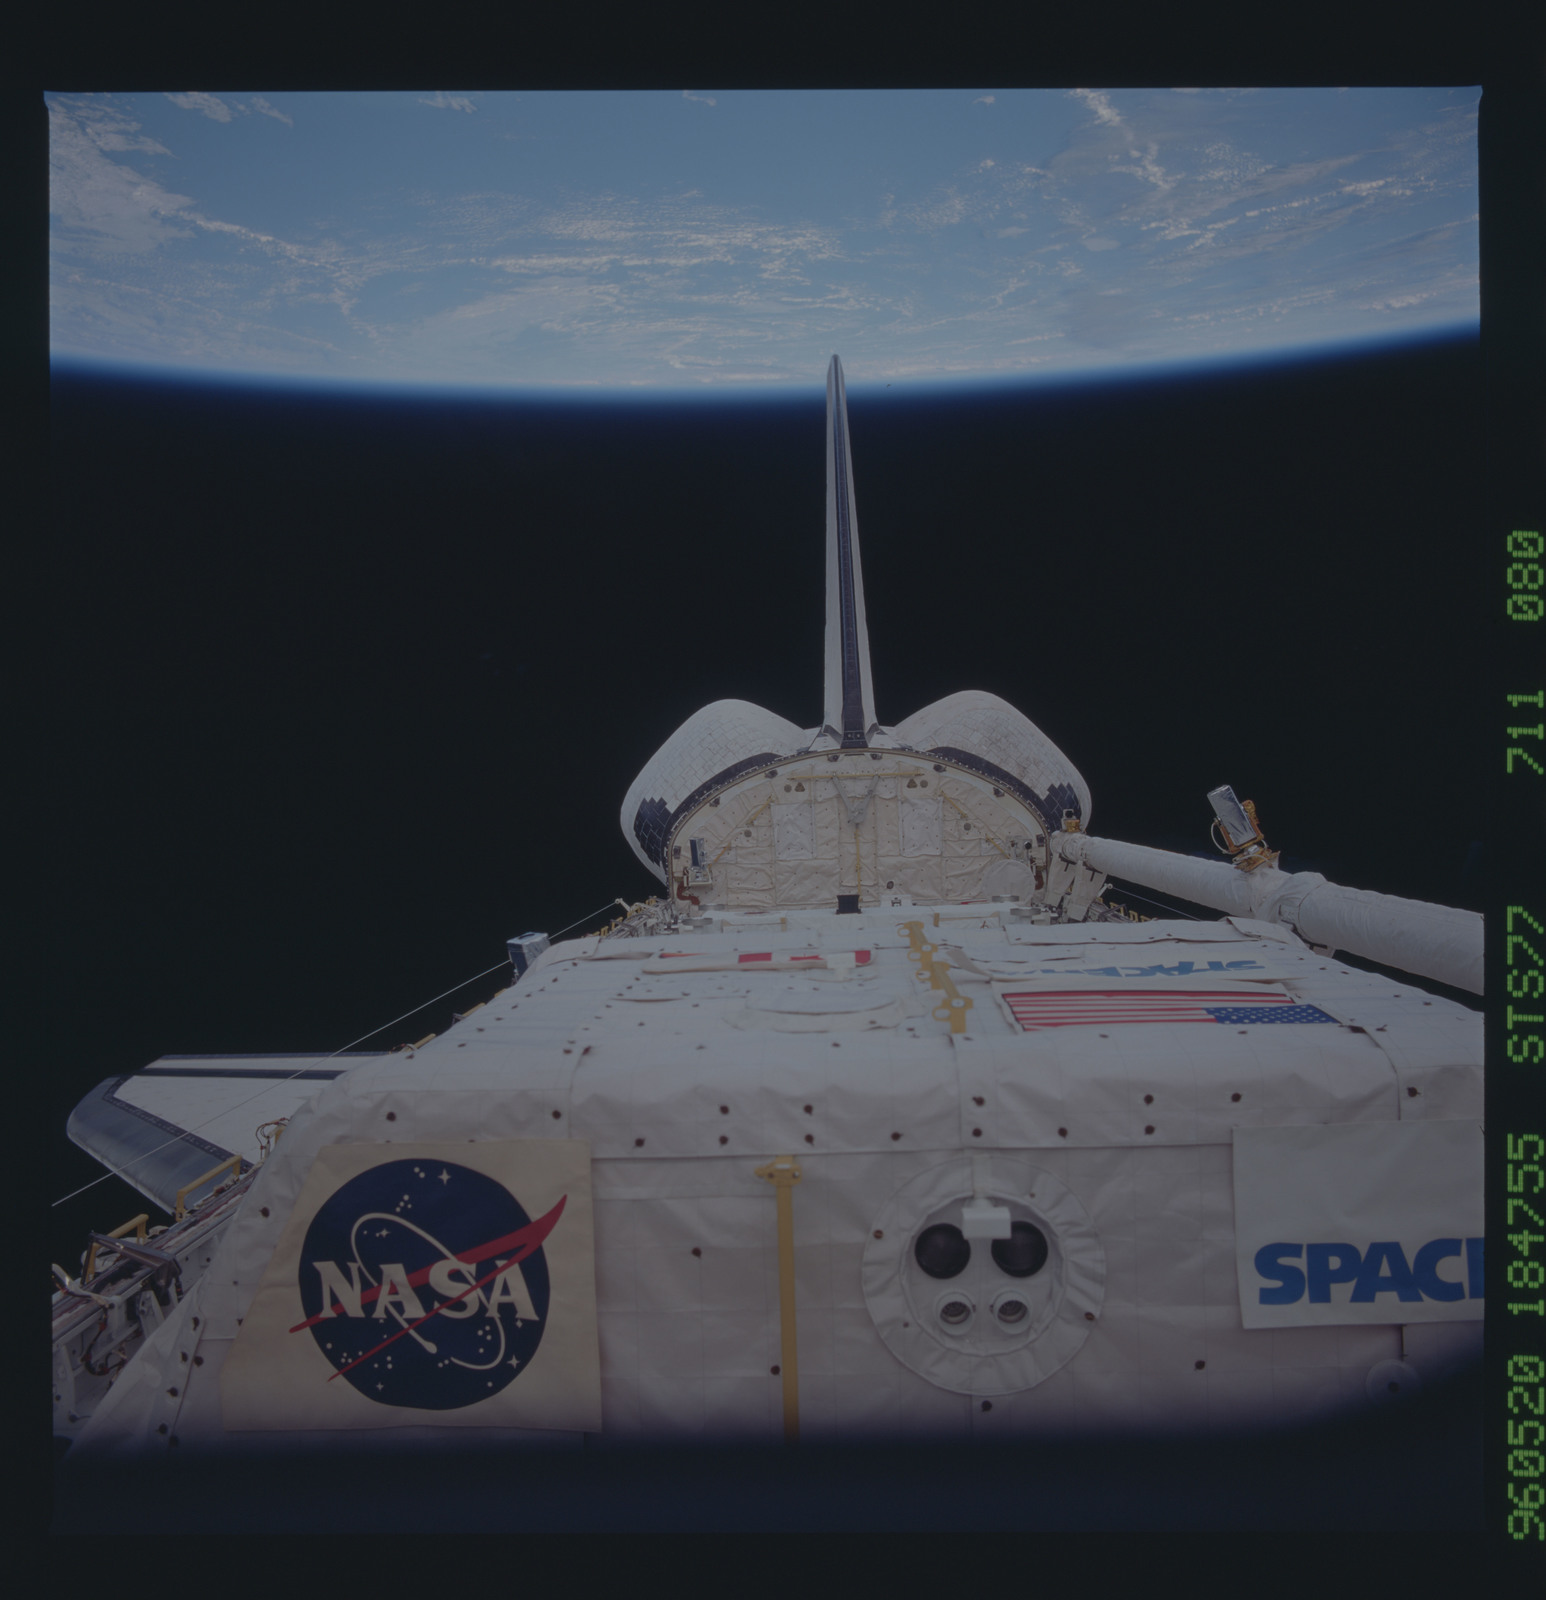 STS077-711-080 - STS-077 - View of the Endeavour's payload bay after release of SPARTAN satellite